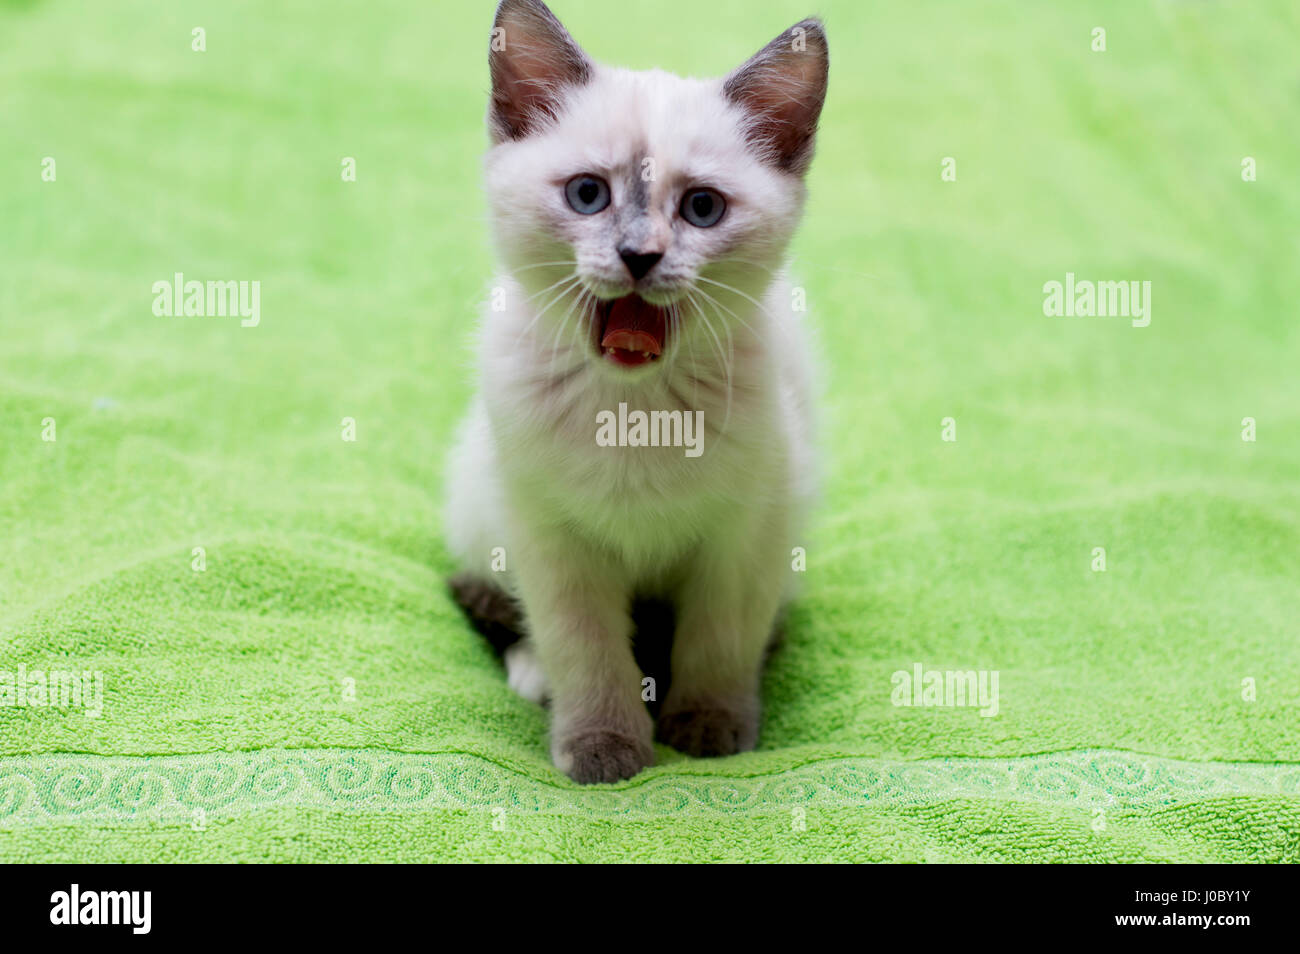 the kitten growls as a lion, a subject beautiful kittens - Stock Image